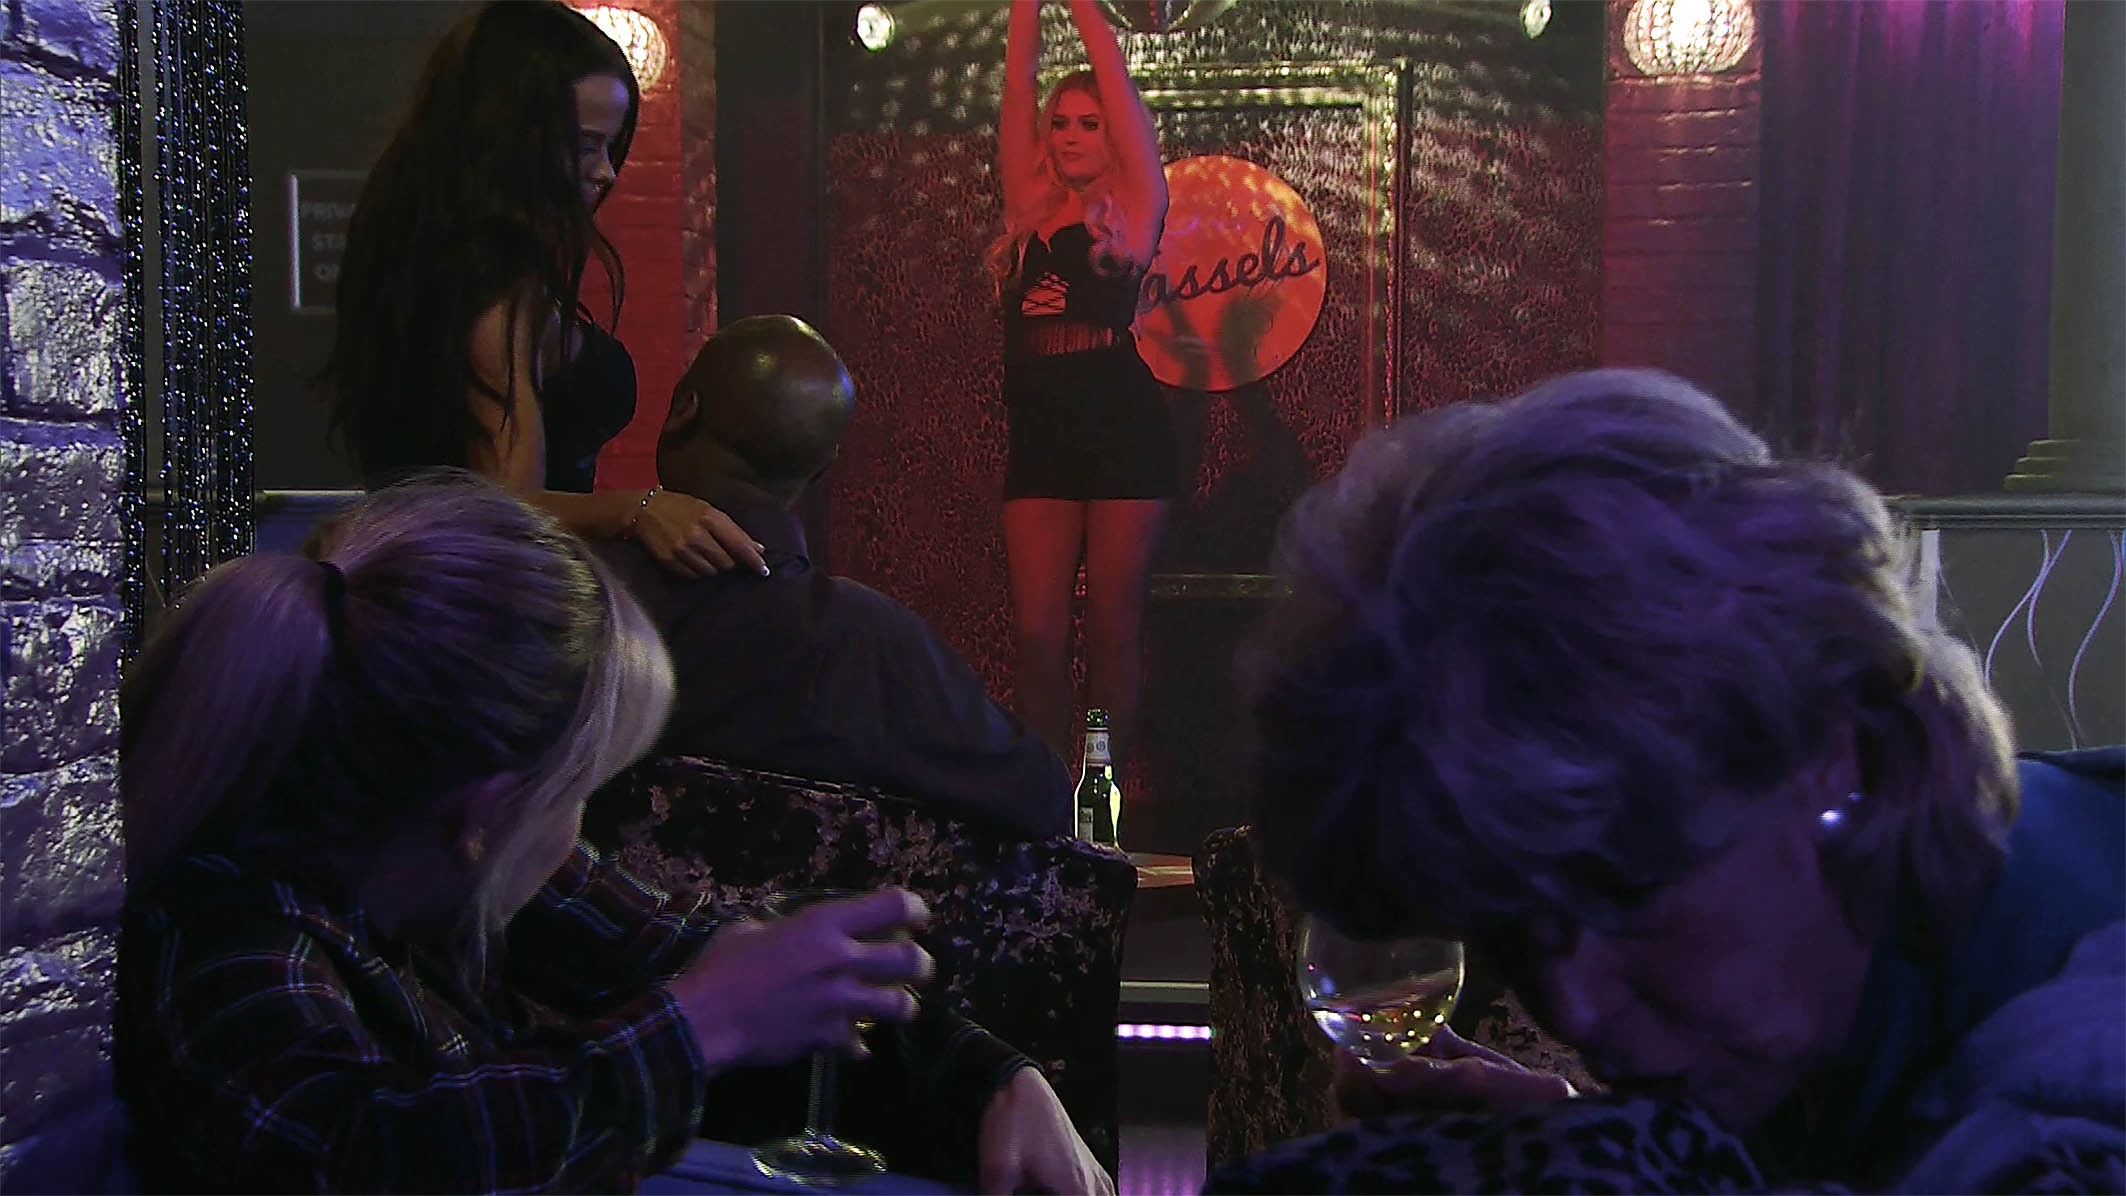 Lapdancing for a friend of mine 10